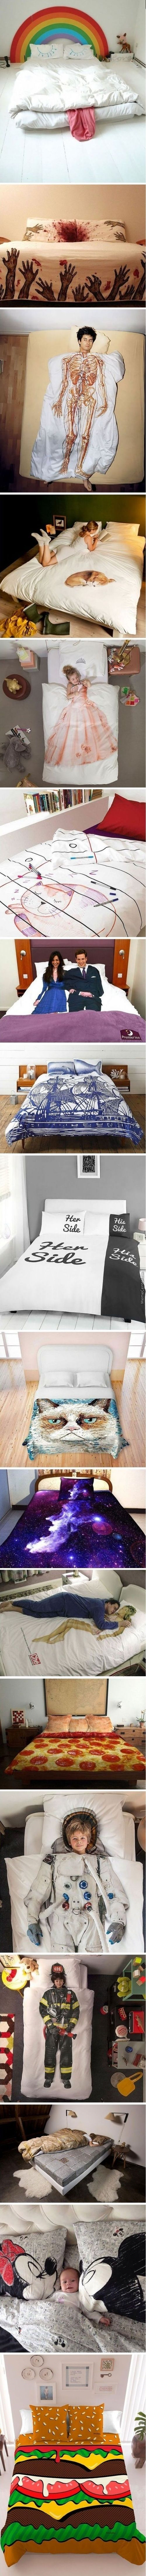 bed wicked mattress cooling cool sheets